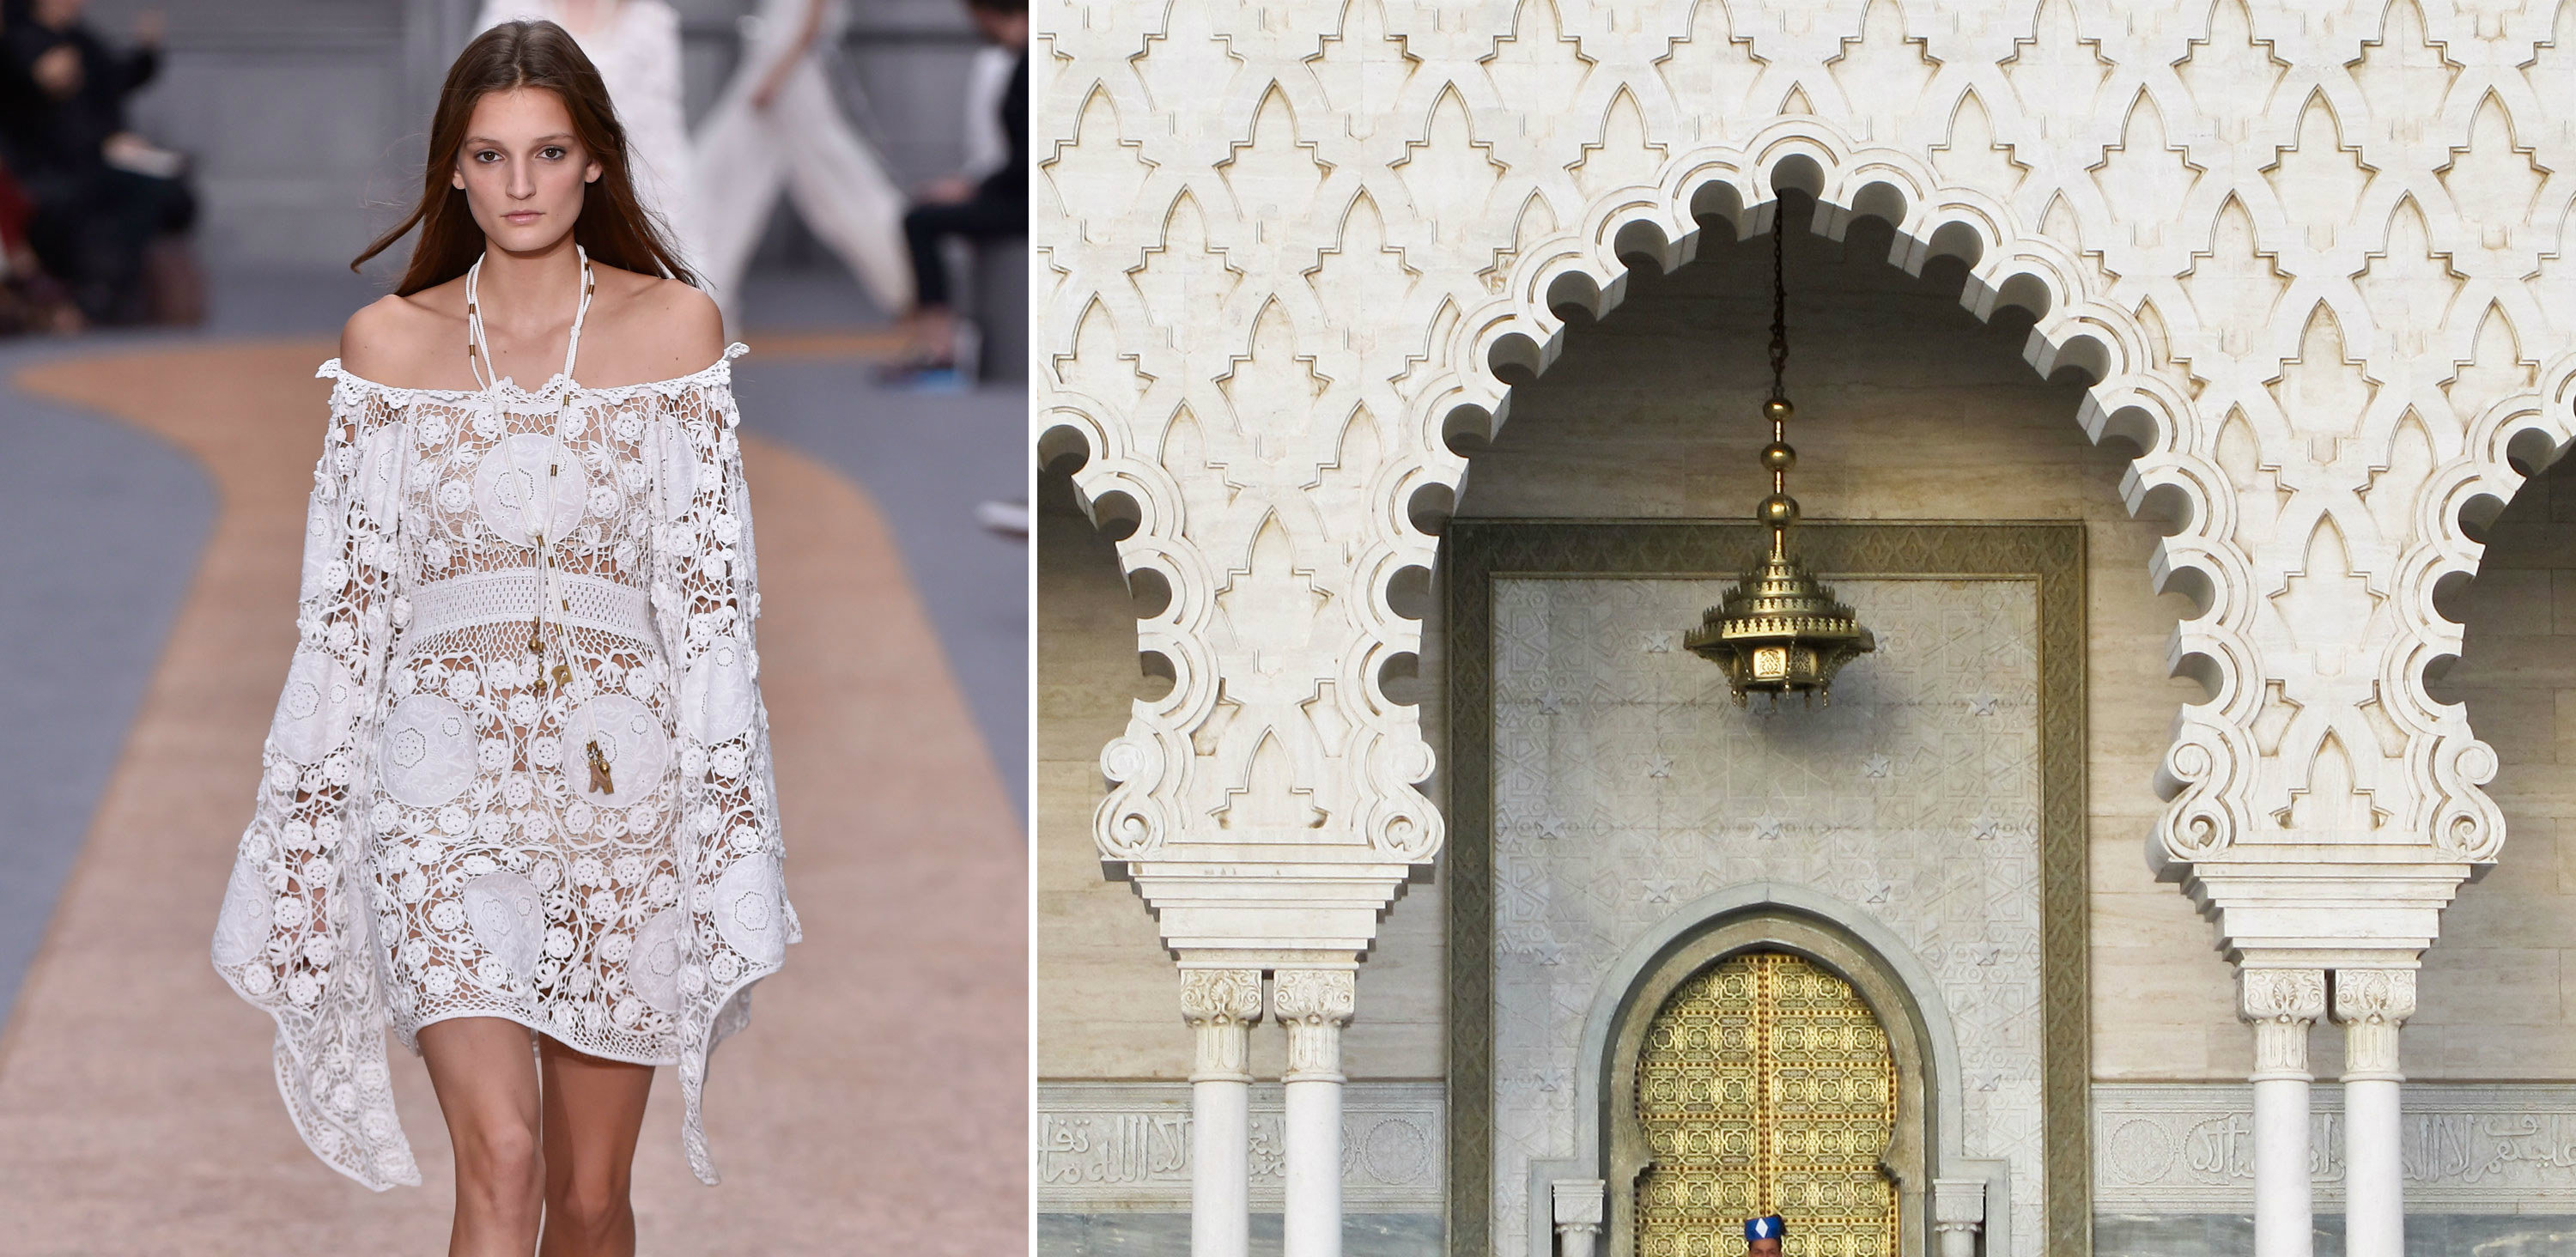 Find what happens when fashion meets architecture